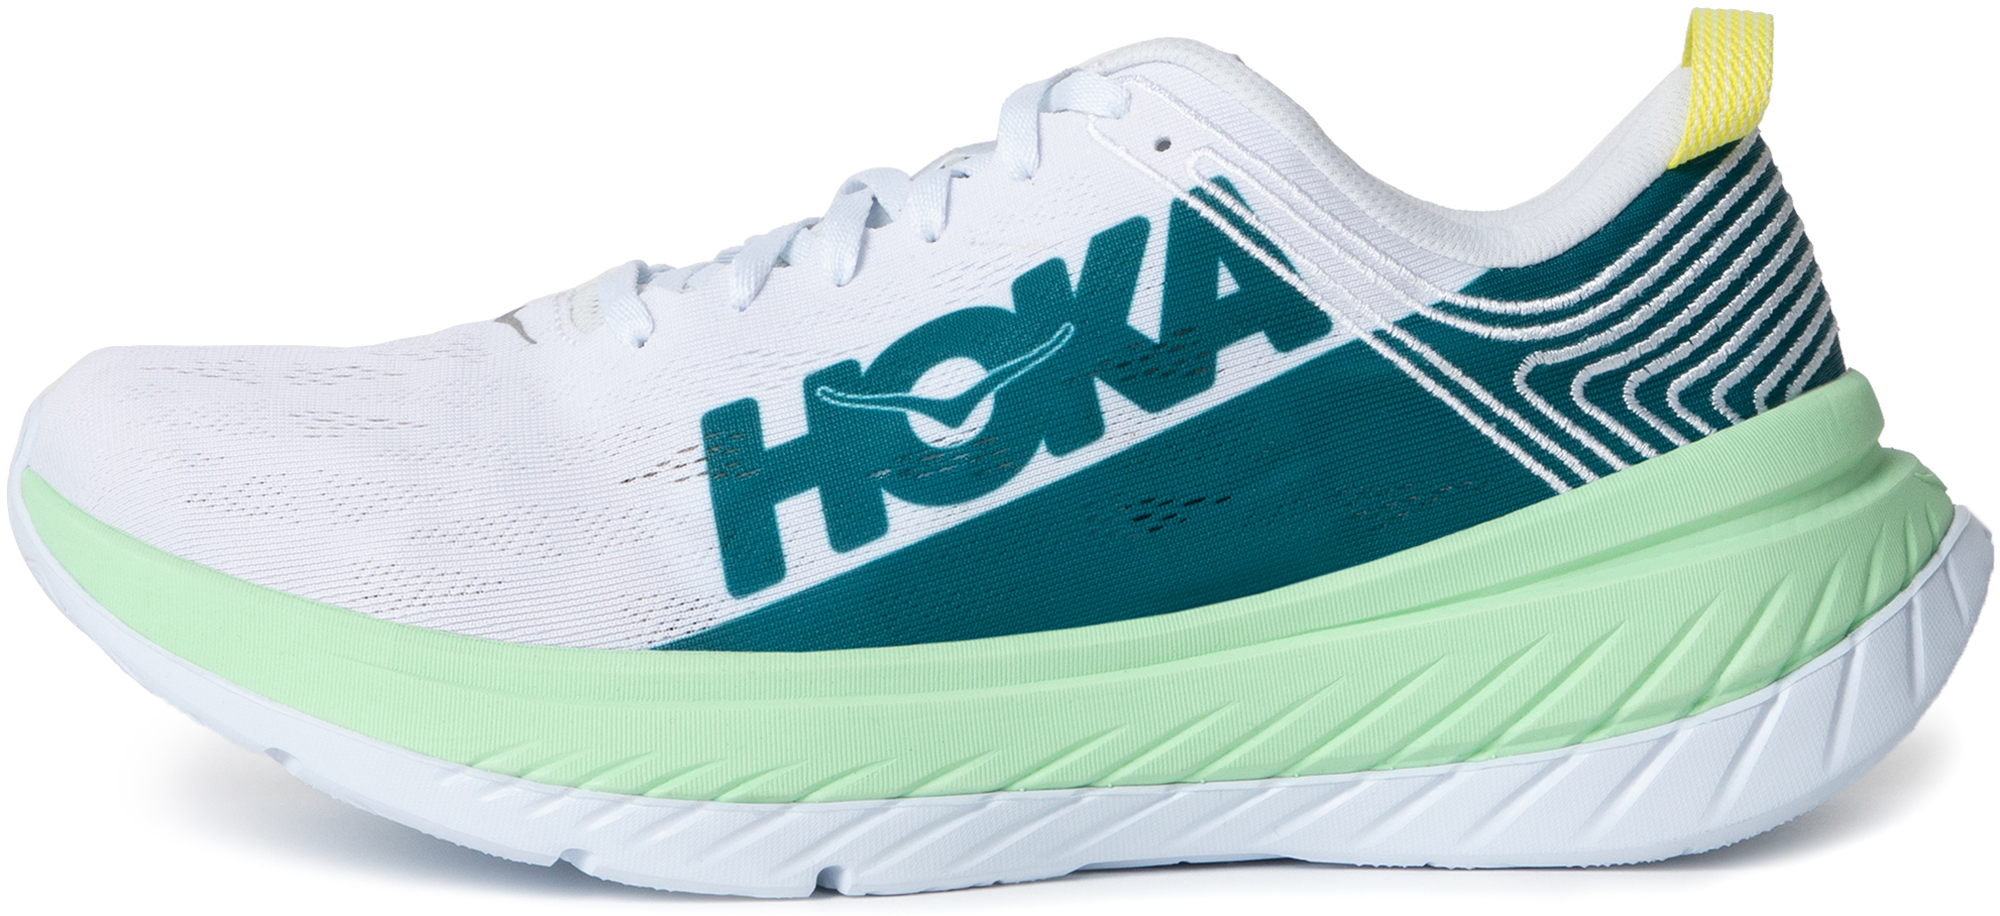 HOKA ONE ONE Кроссовки мужские HOKA ONE ONE Carbon, размер 45 hoka one one women s w conquest running shoe